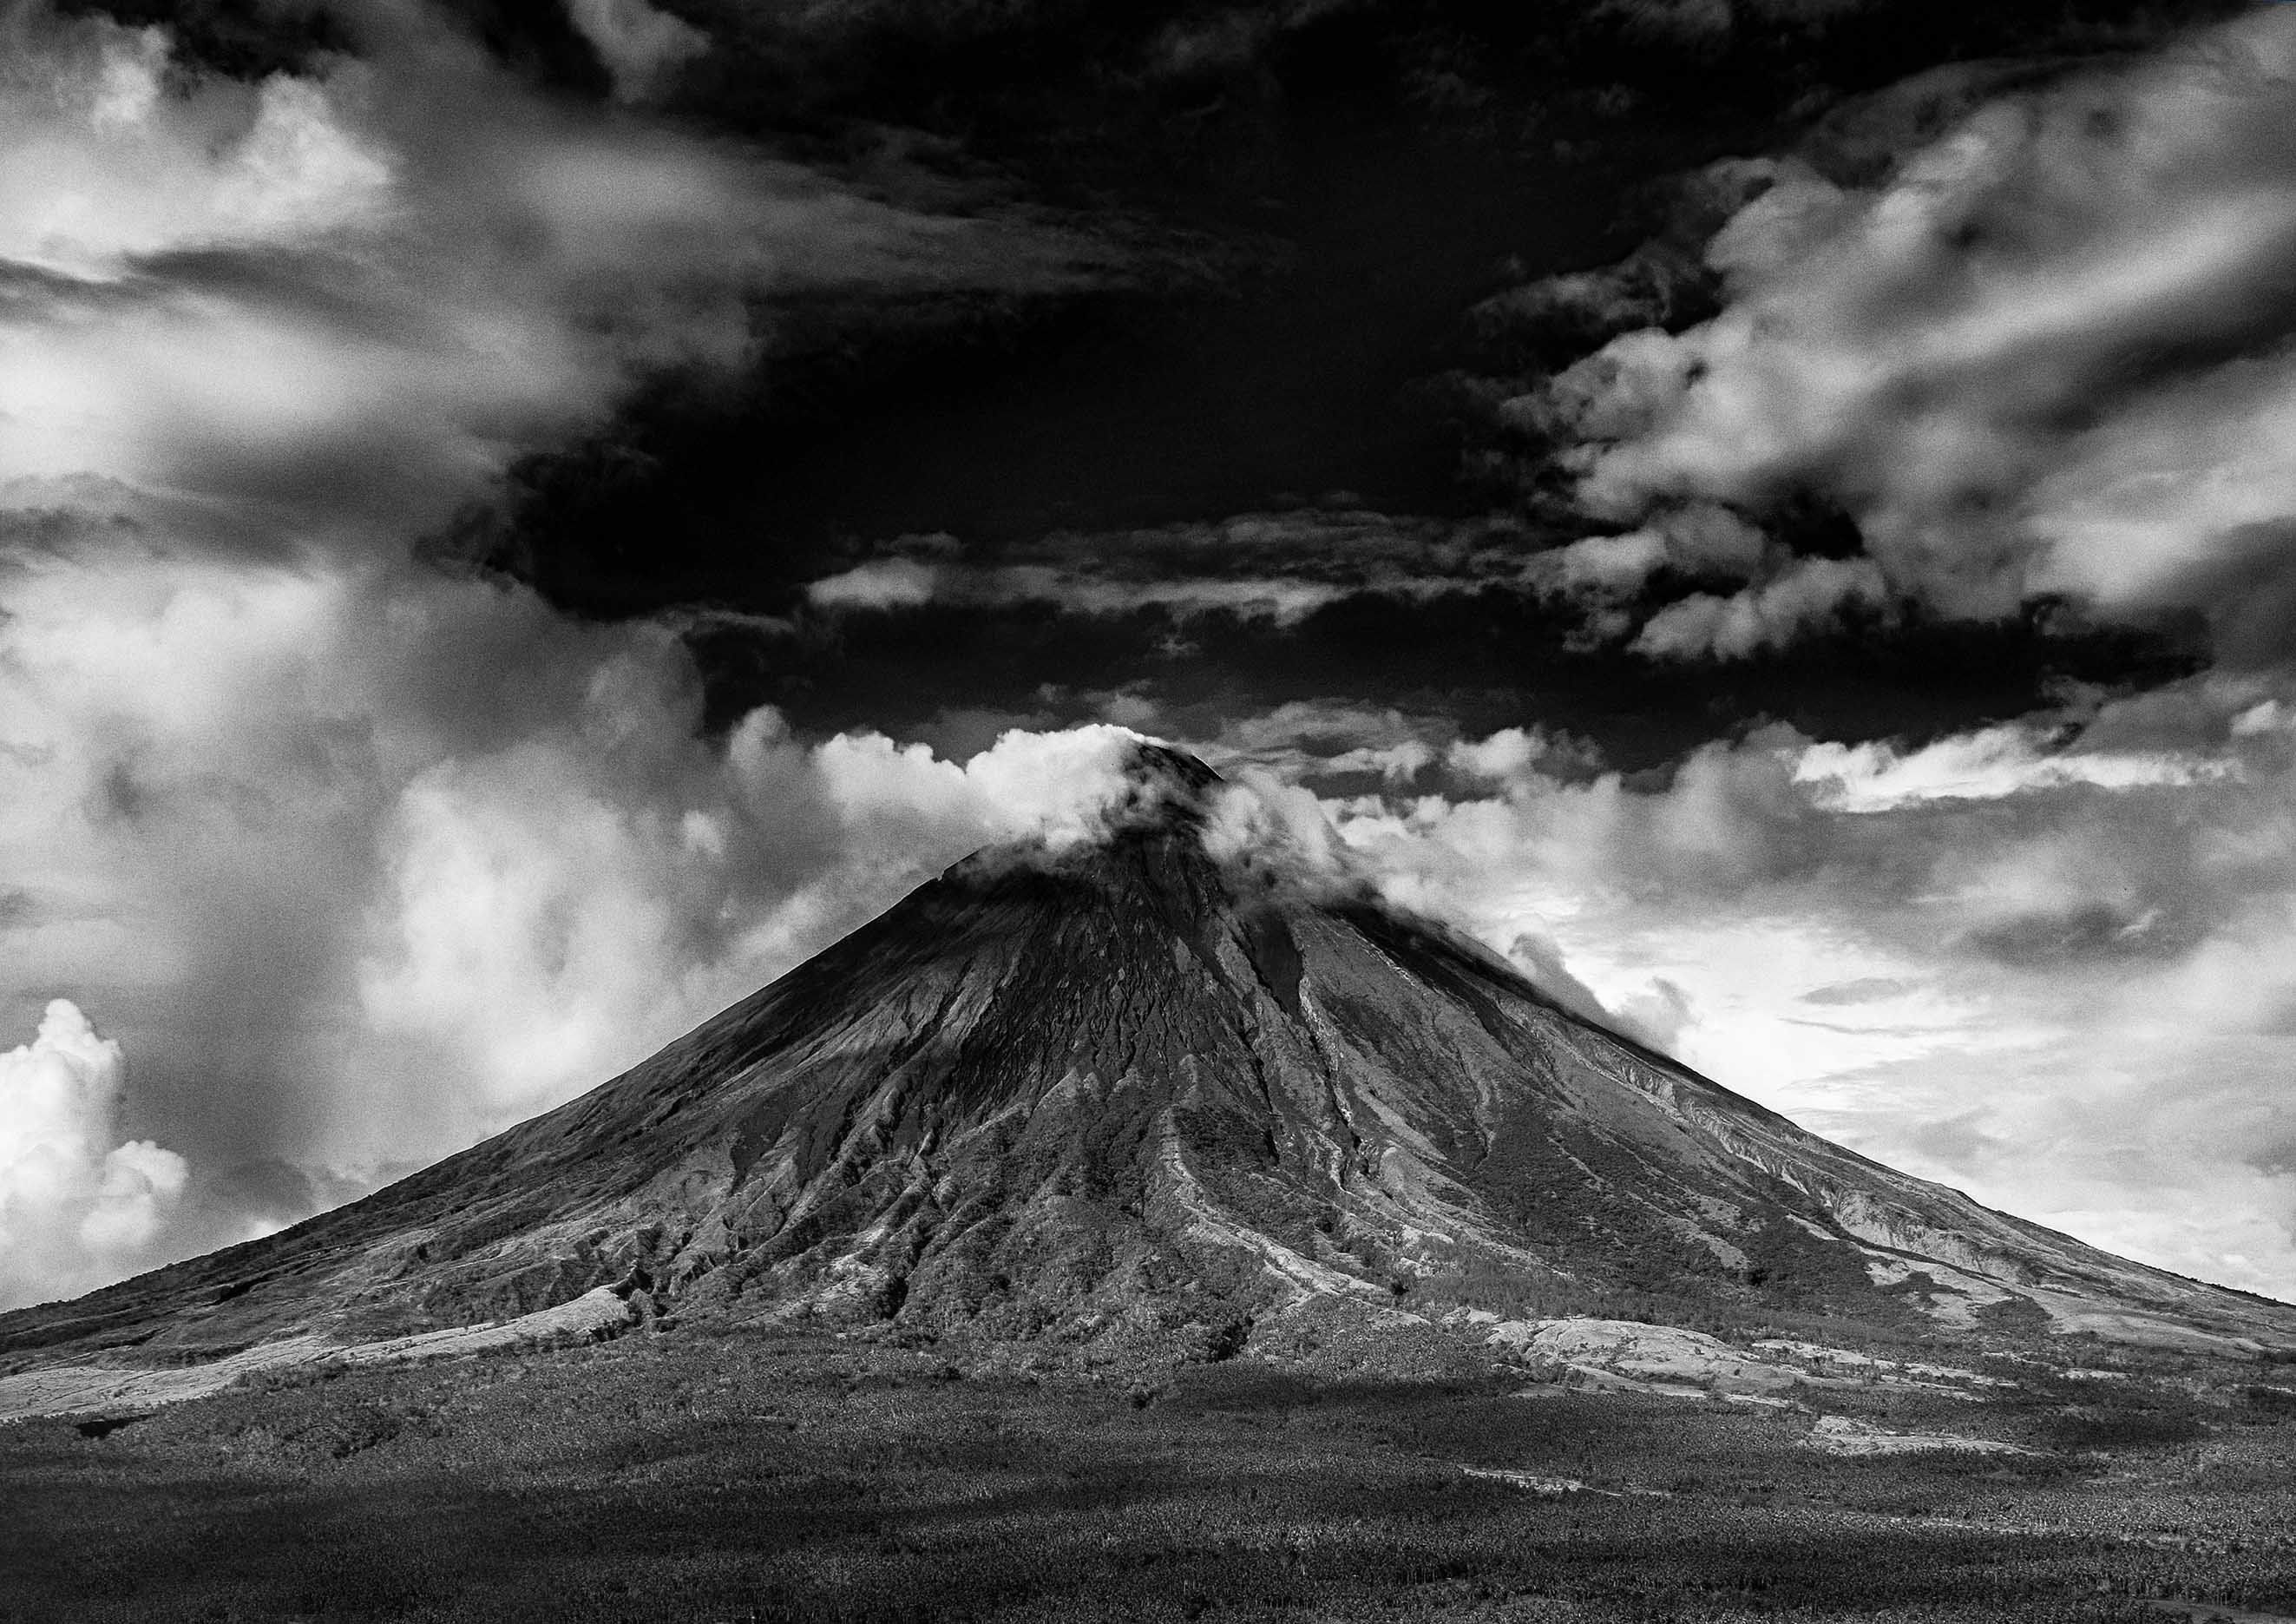 Volcano black and white photography print